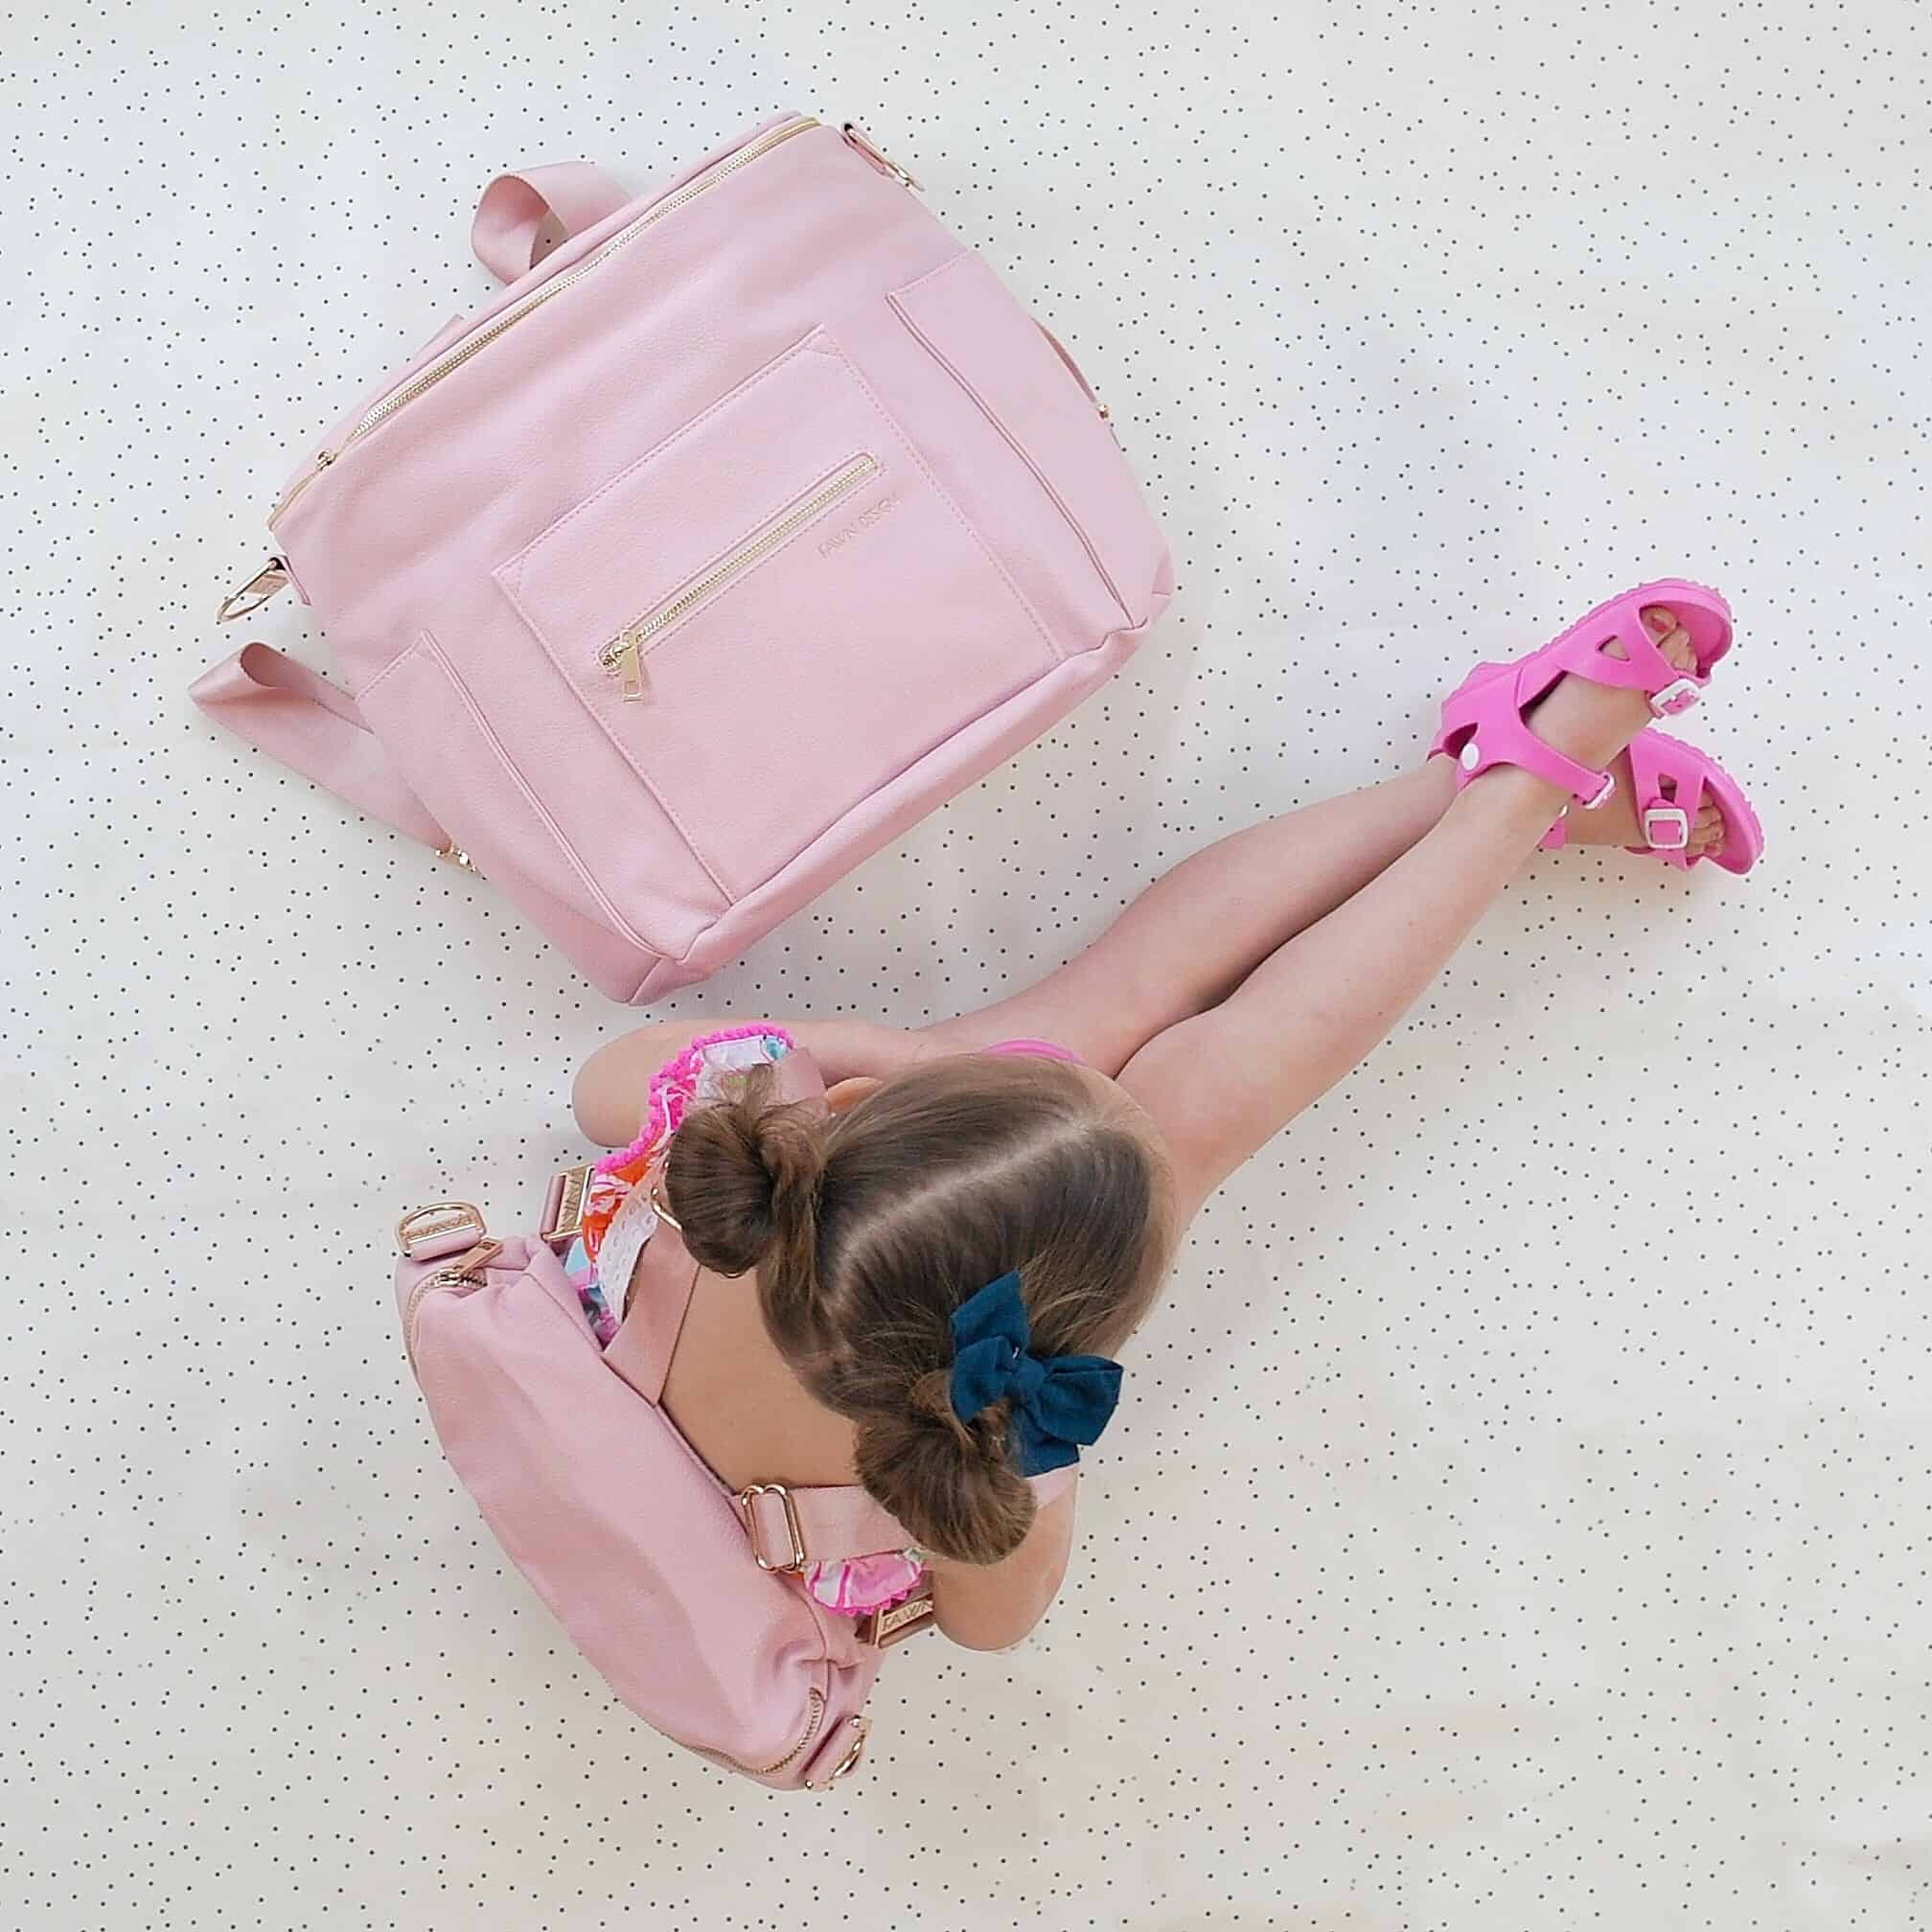 Toddler girl with pink fawn design diaper bag on and pink fawn design diaper bag next to her